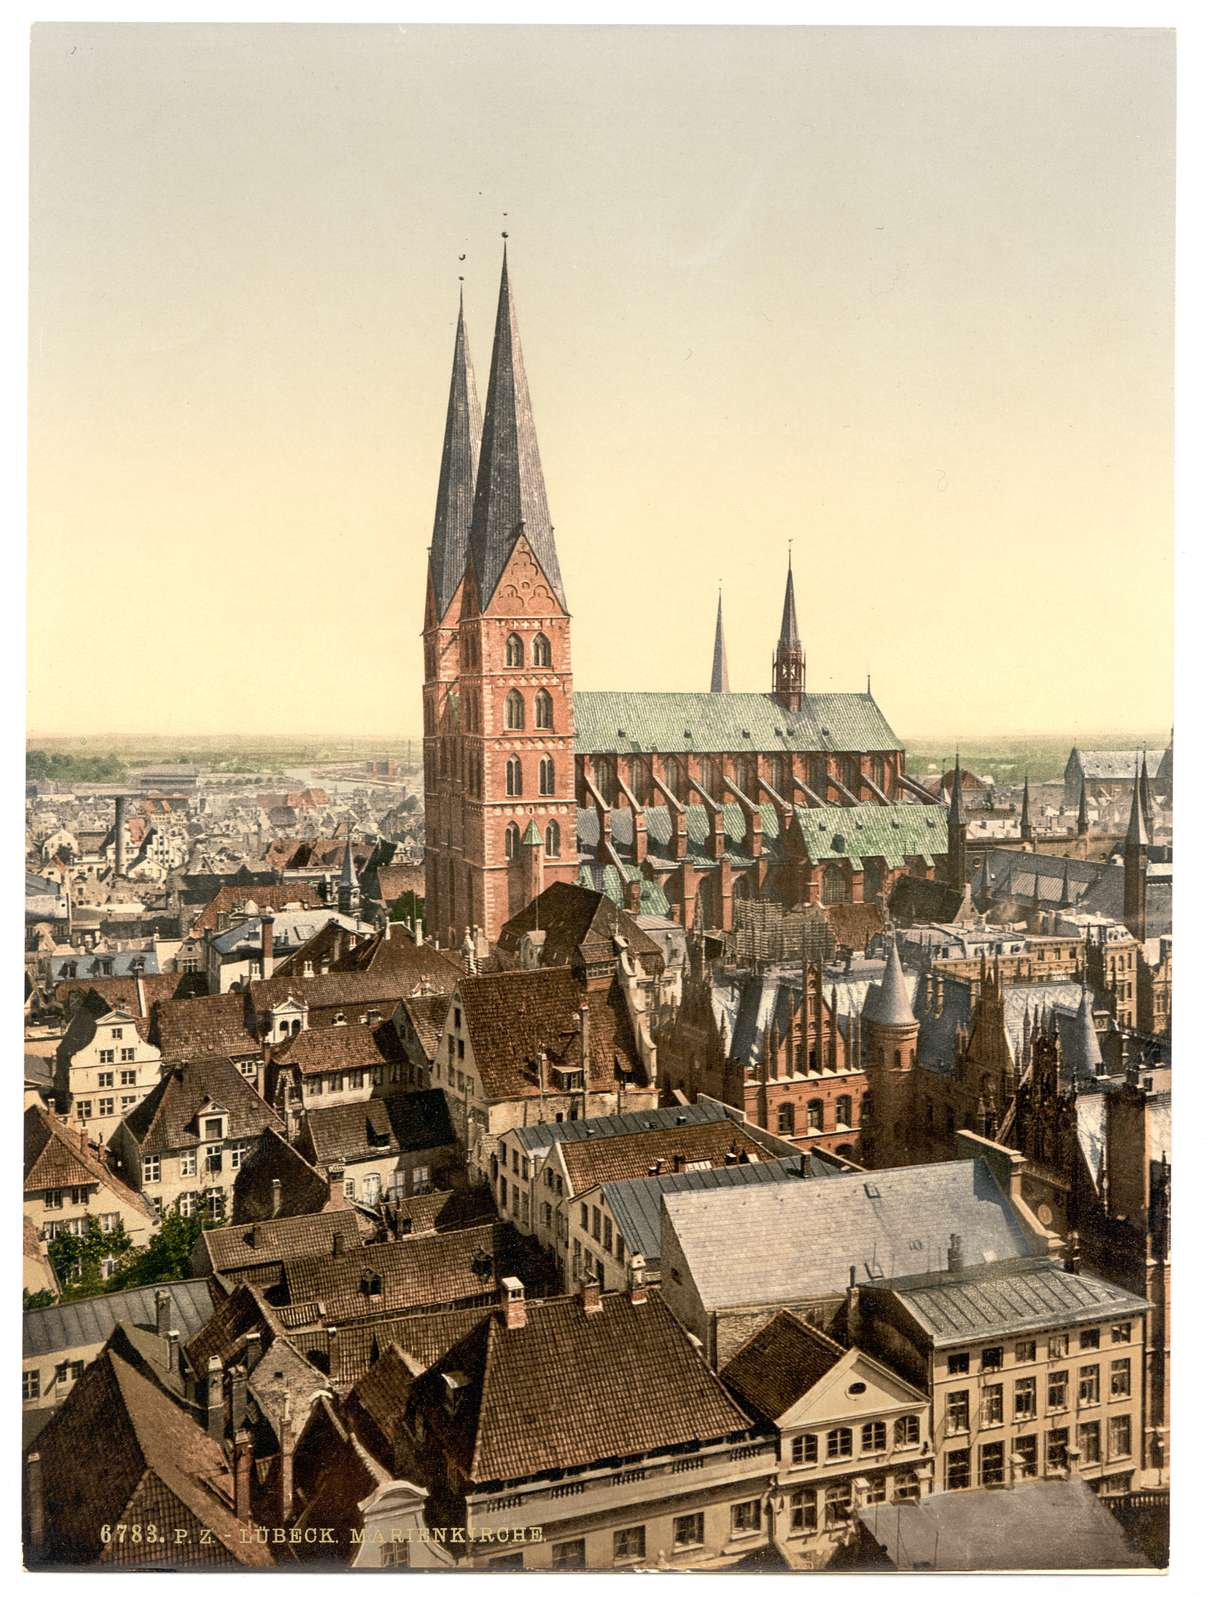 [St. Mary's, from St. Peter's Clock Tower, Lubeck, Germany]